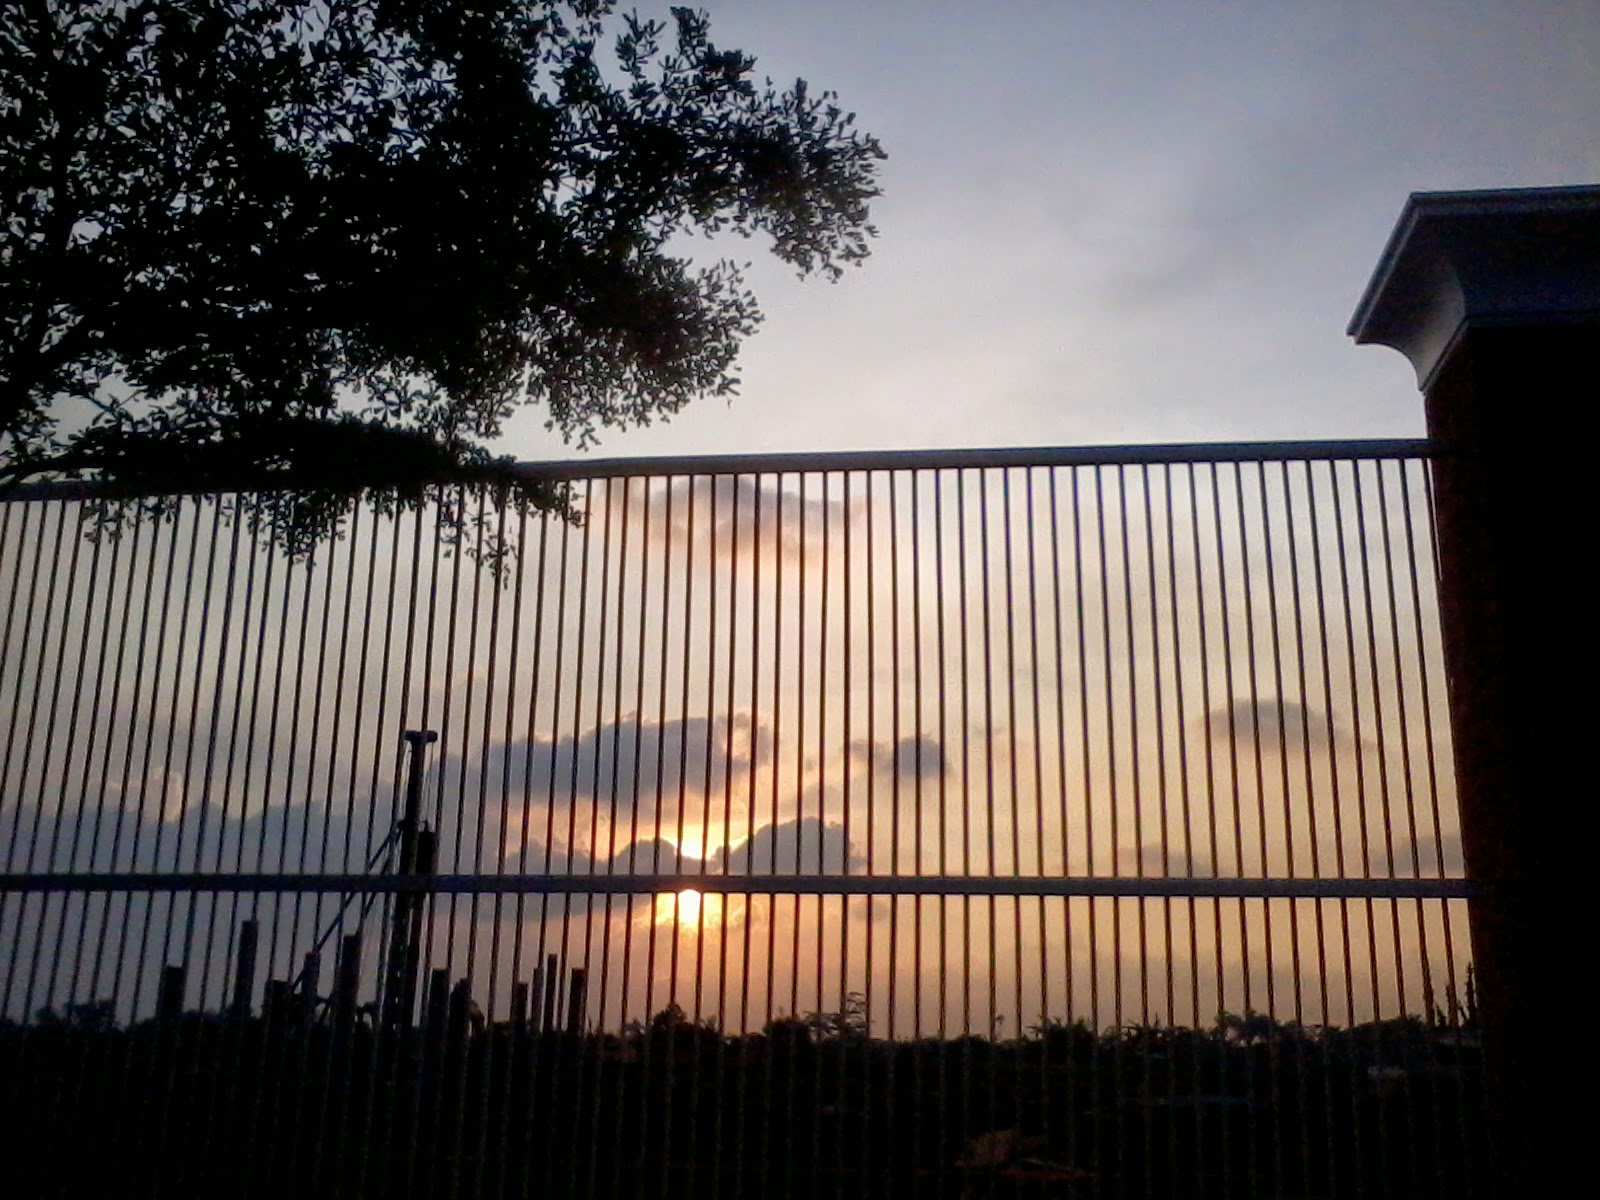 Sunset in the Fence